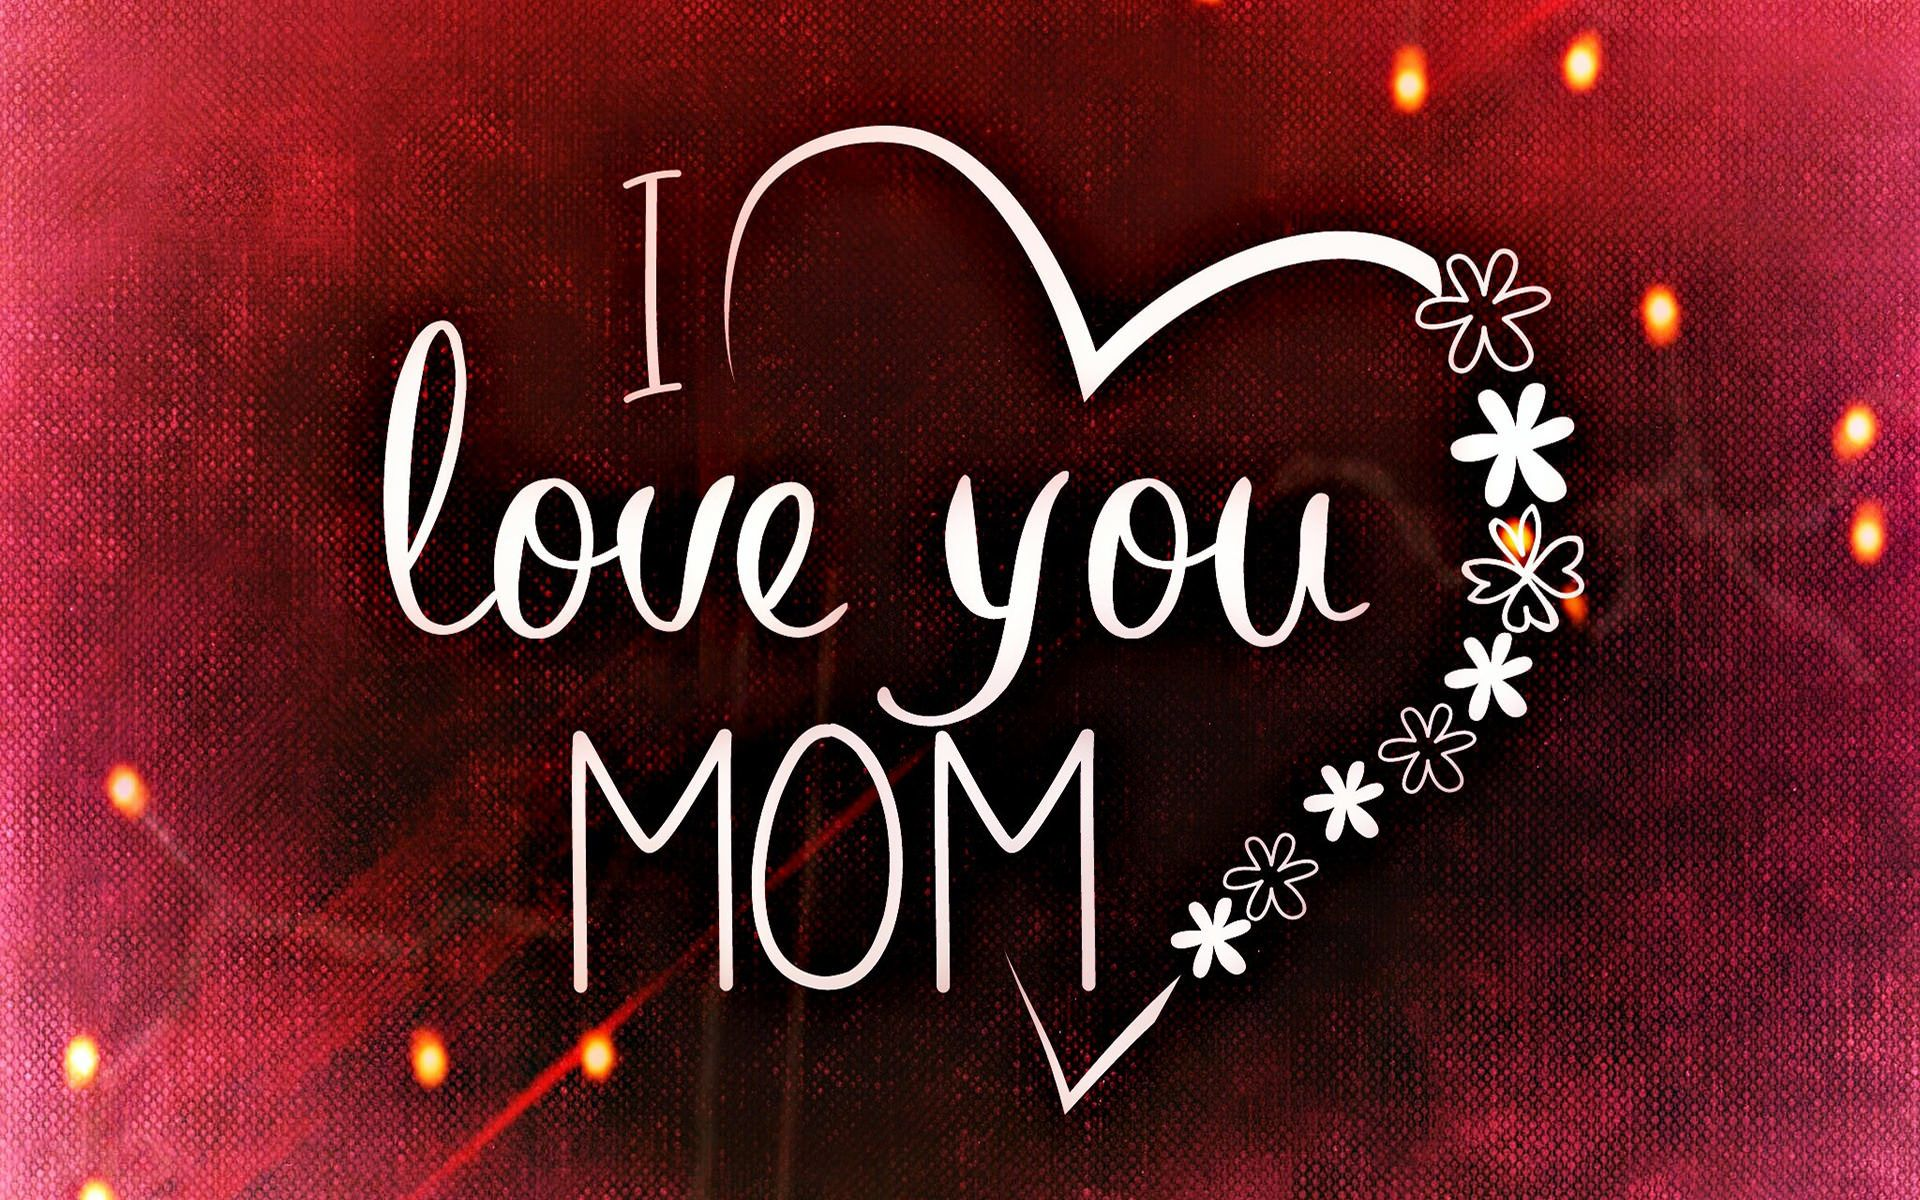 Amazing Way To Say I Love You Mom I Love My Dad Happy Mothers Day Wishes Mother Day Wishes